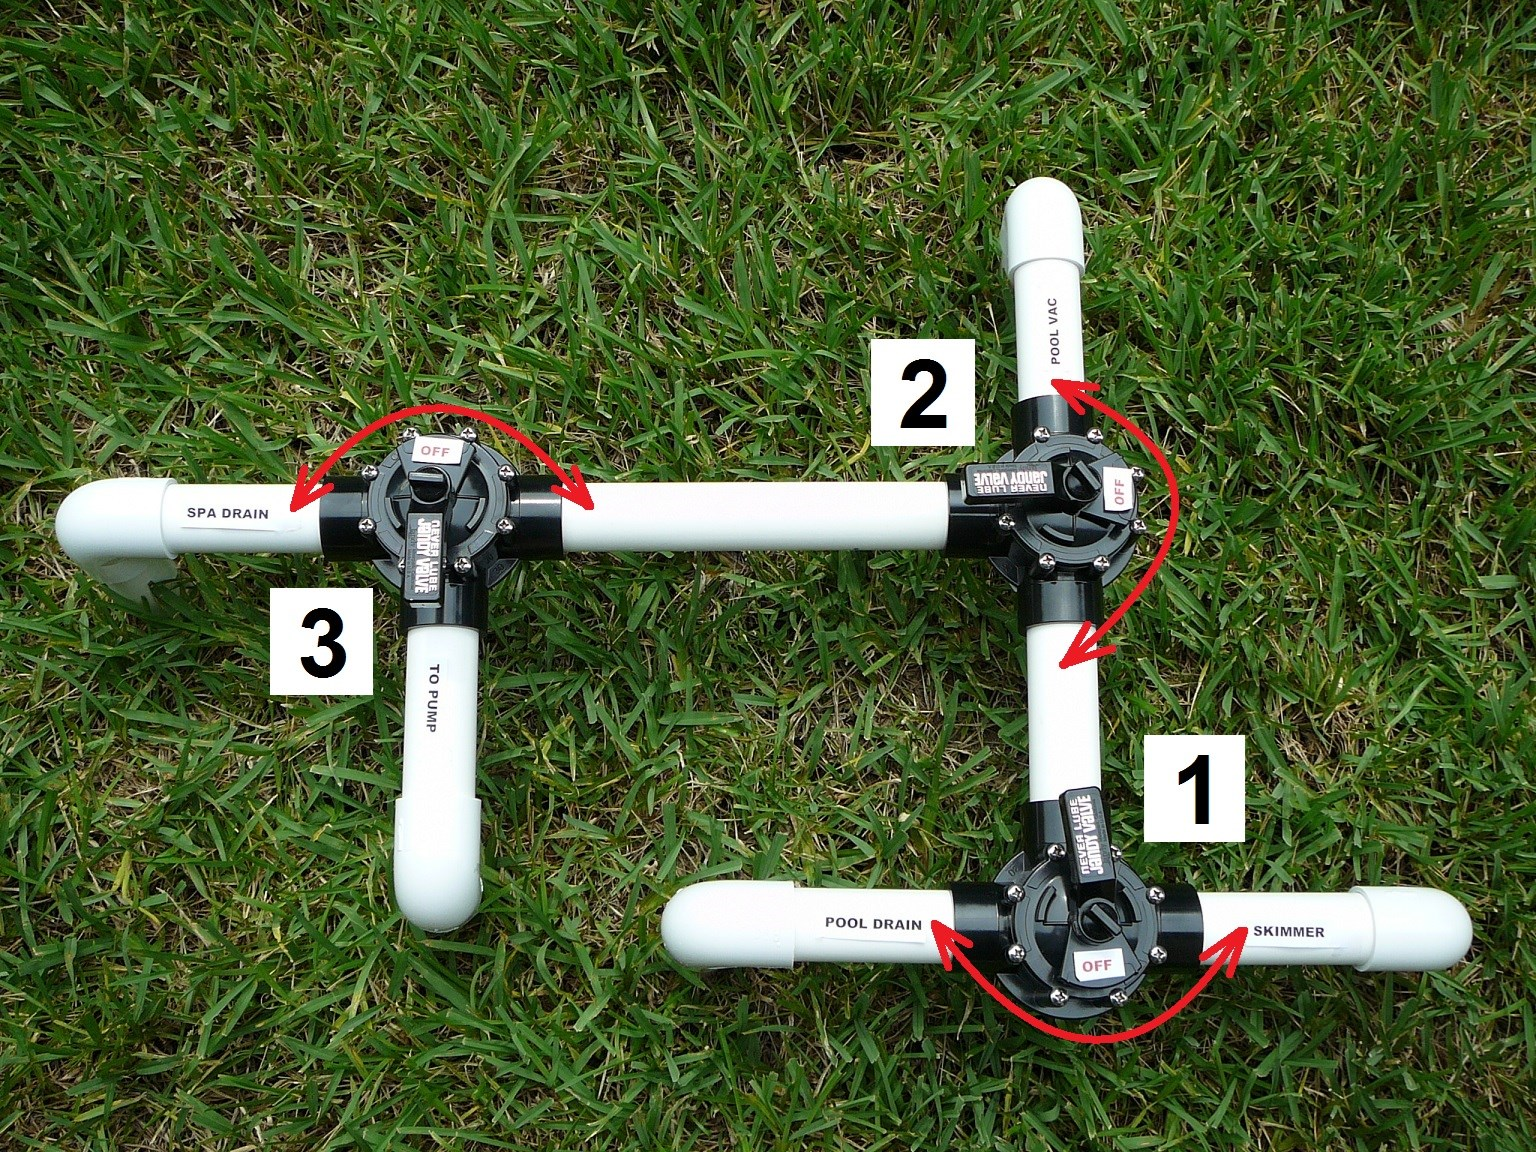 How To Set Up Pool Diverter Valves For A Basic Pool And